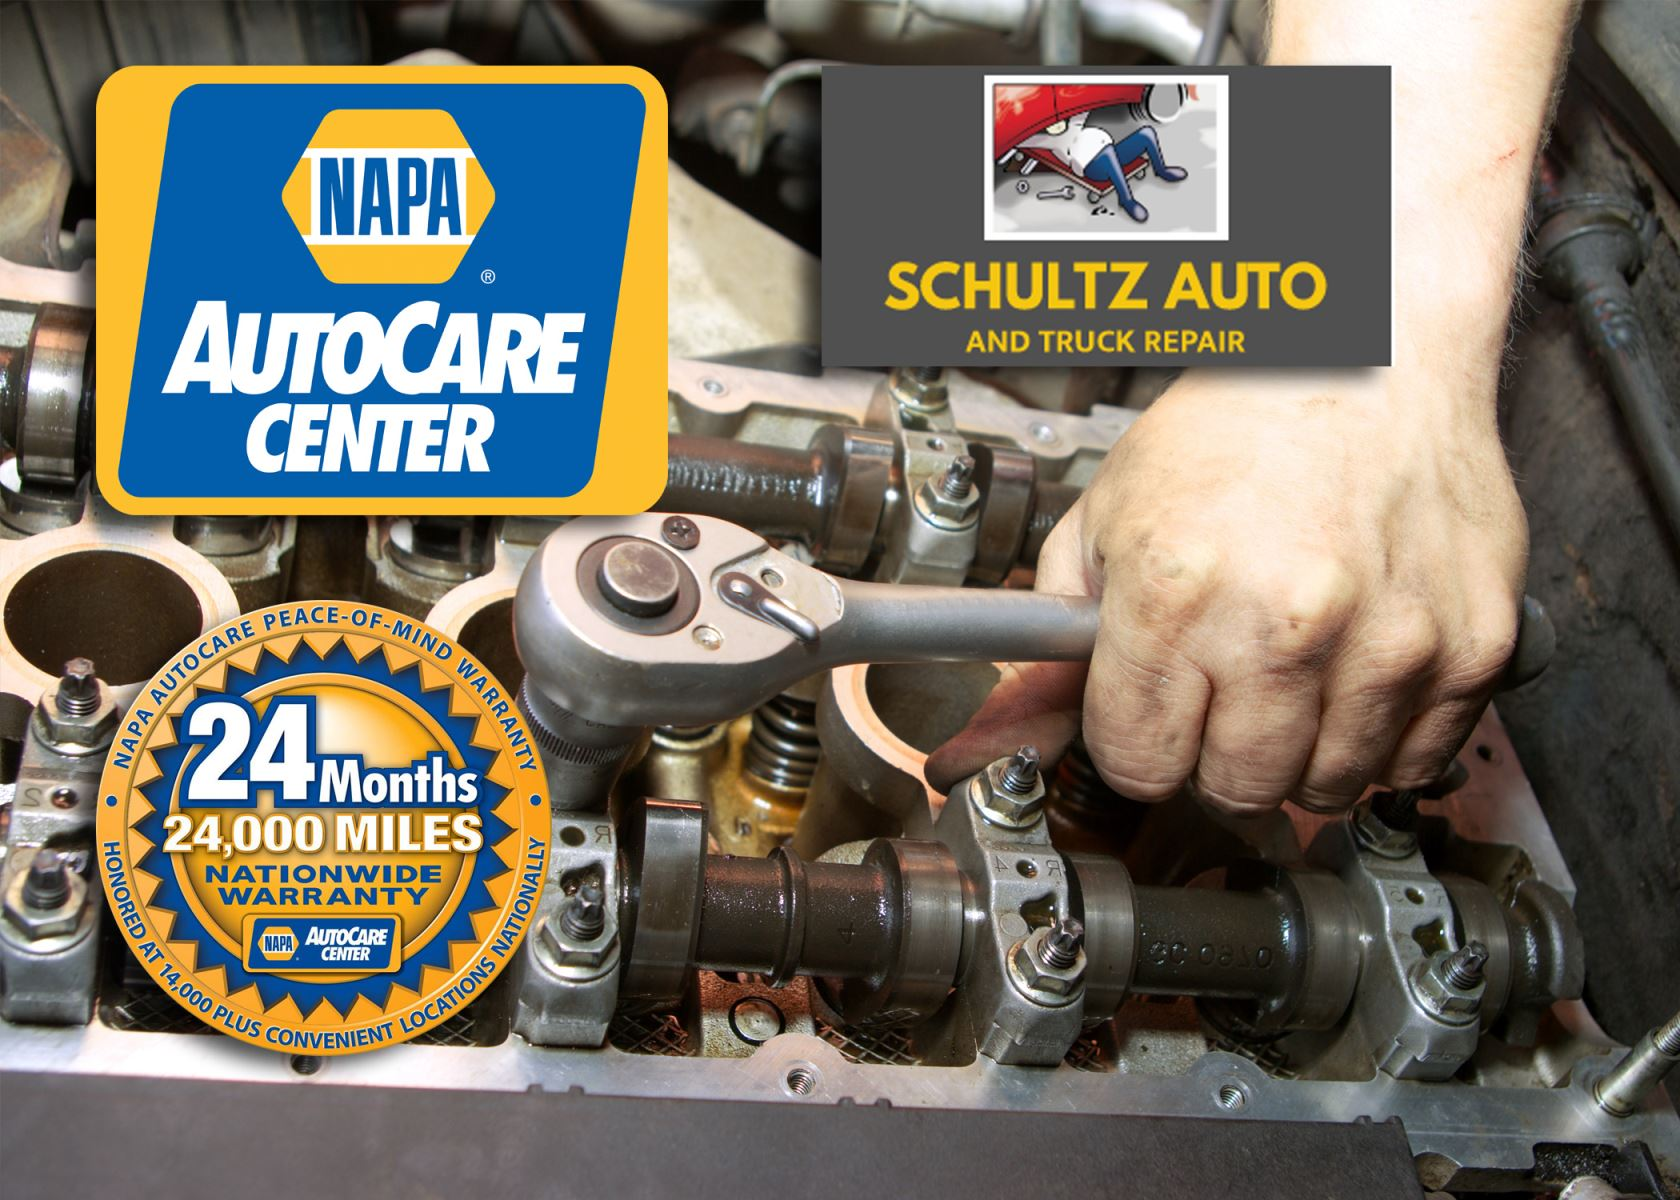 Schultz Auto and Truck Repair is Proud to Be a Certified NAPA AutoCare Center